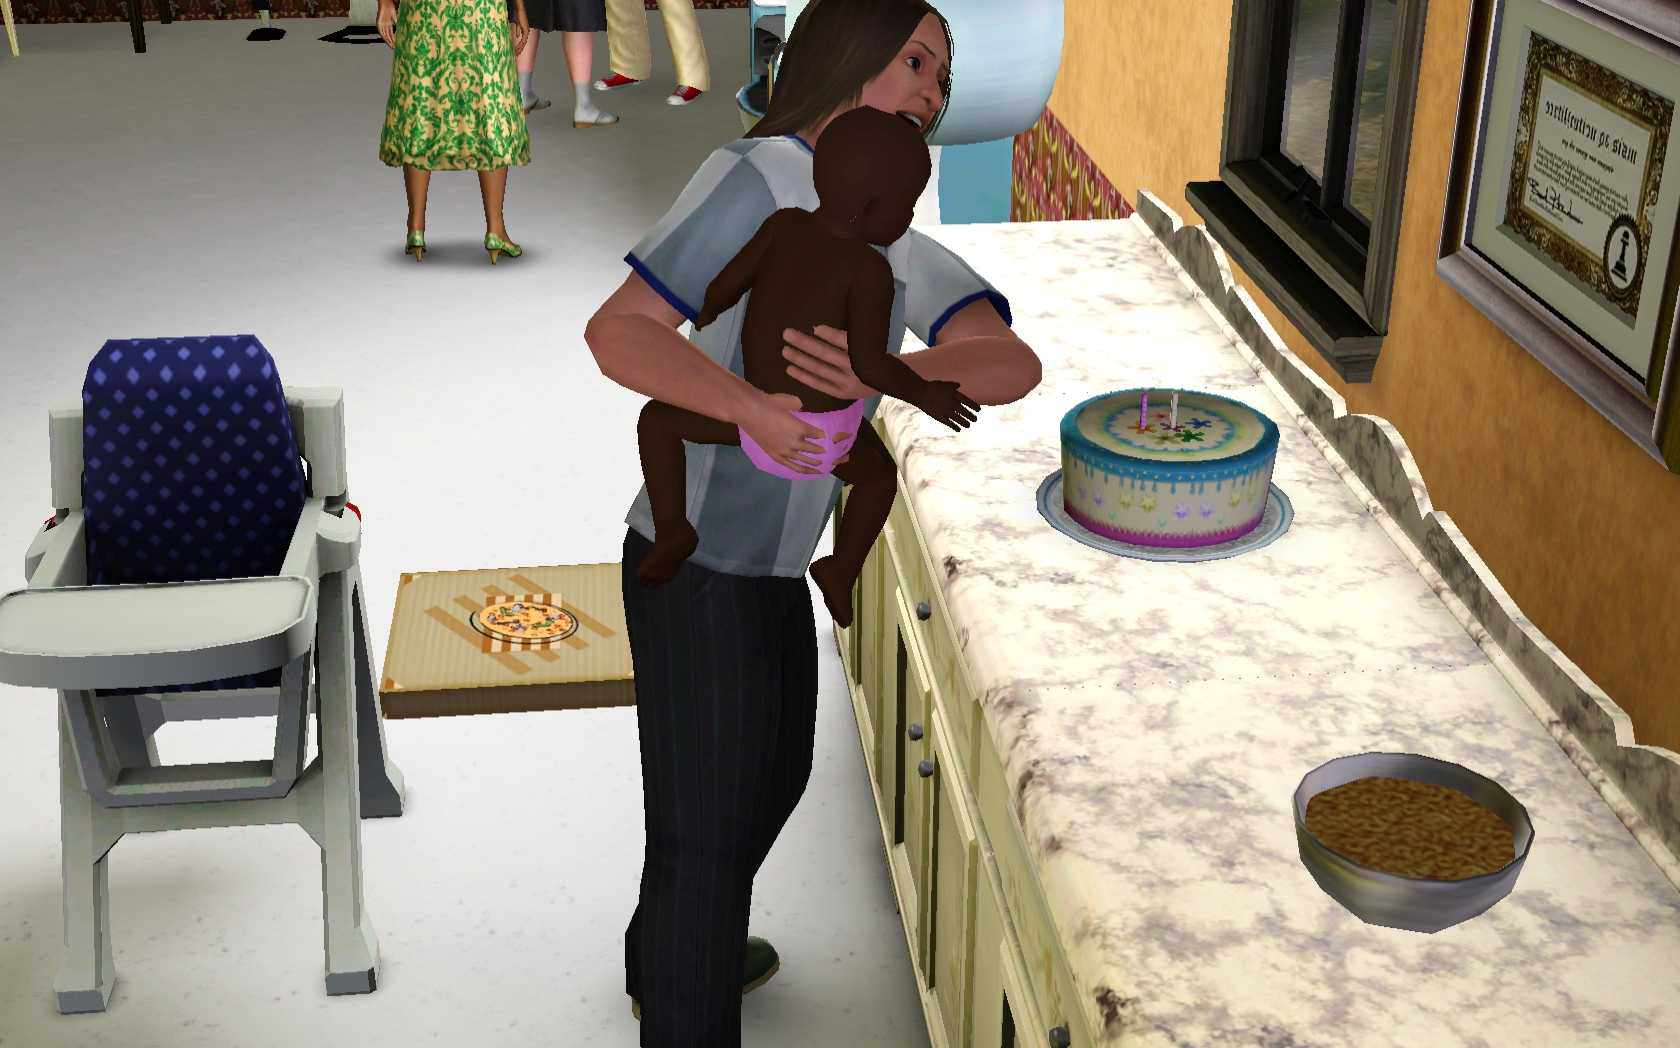 The Sims 3 Parenting Guide Throwing Birthday Parties For Kids